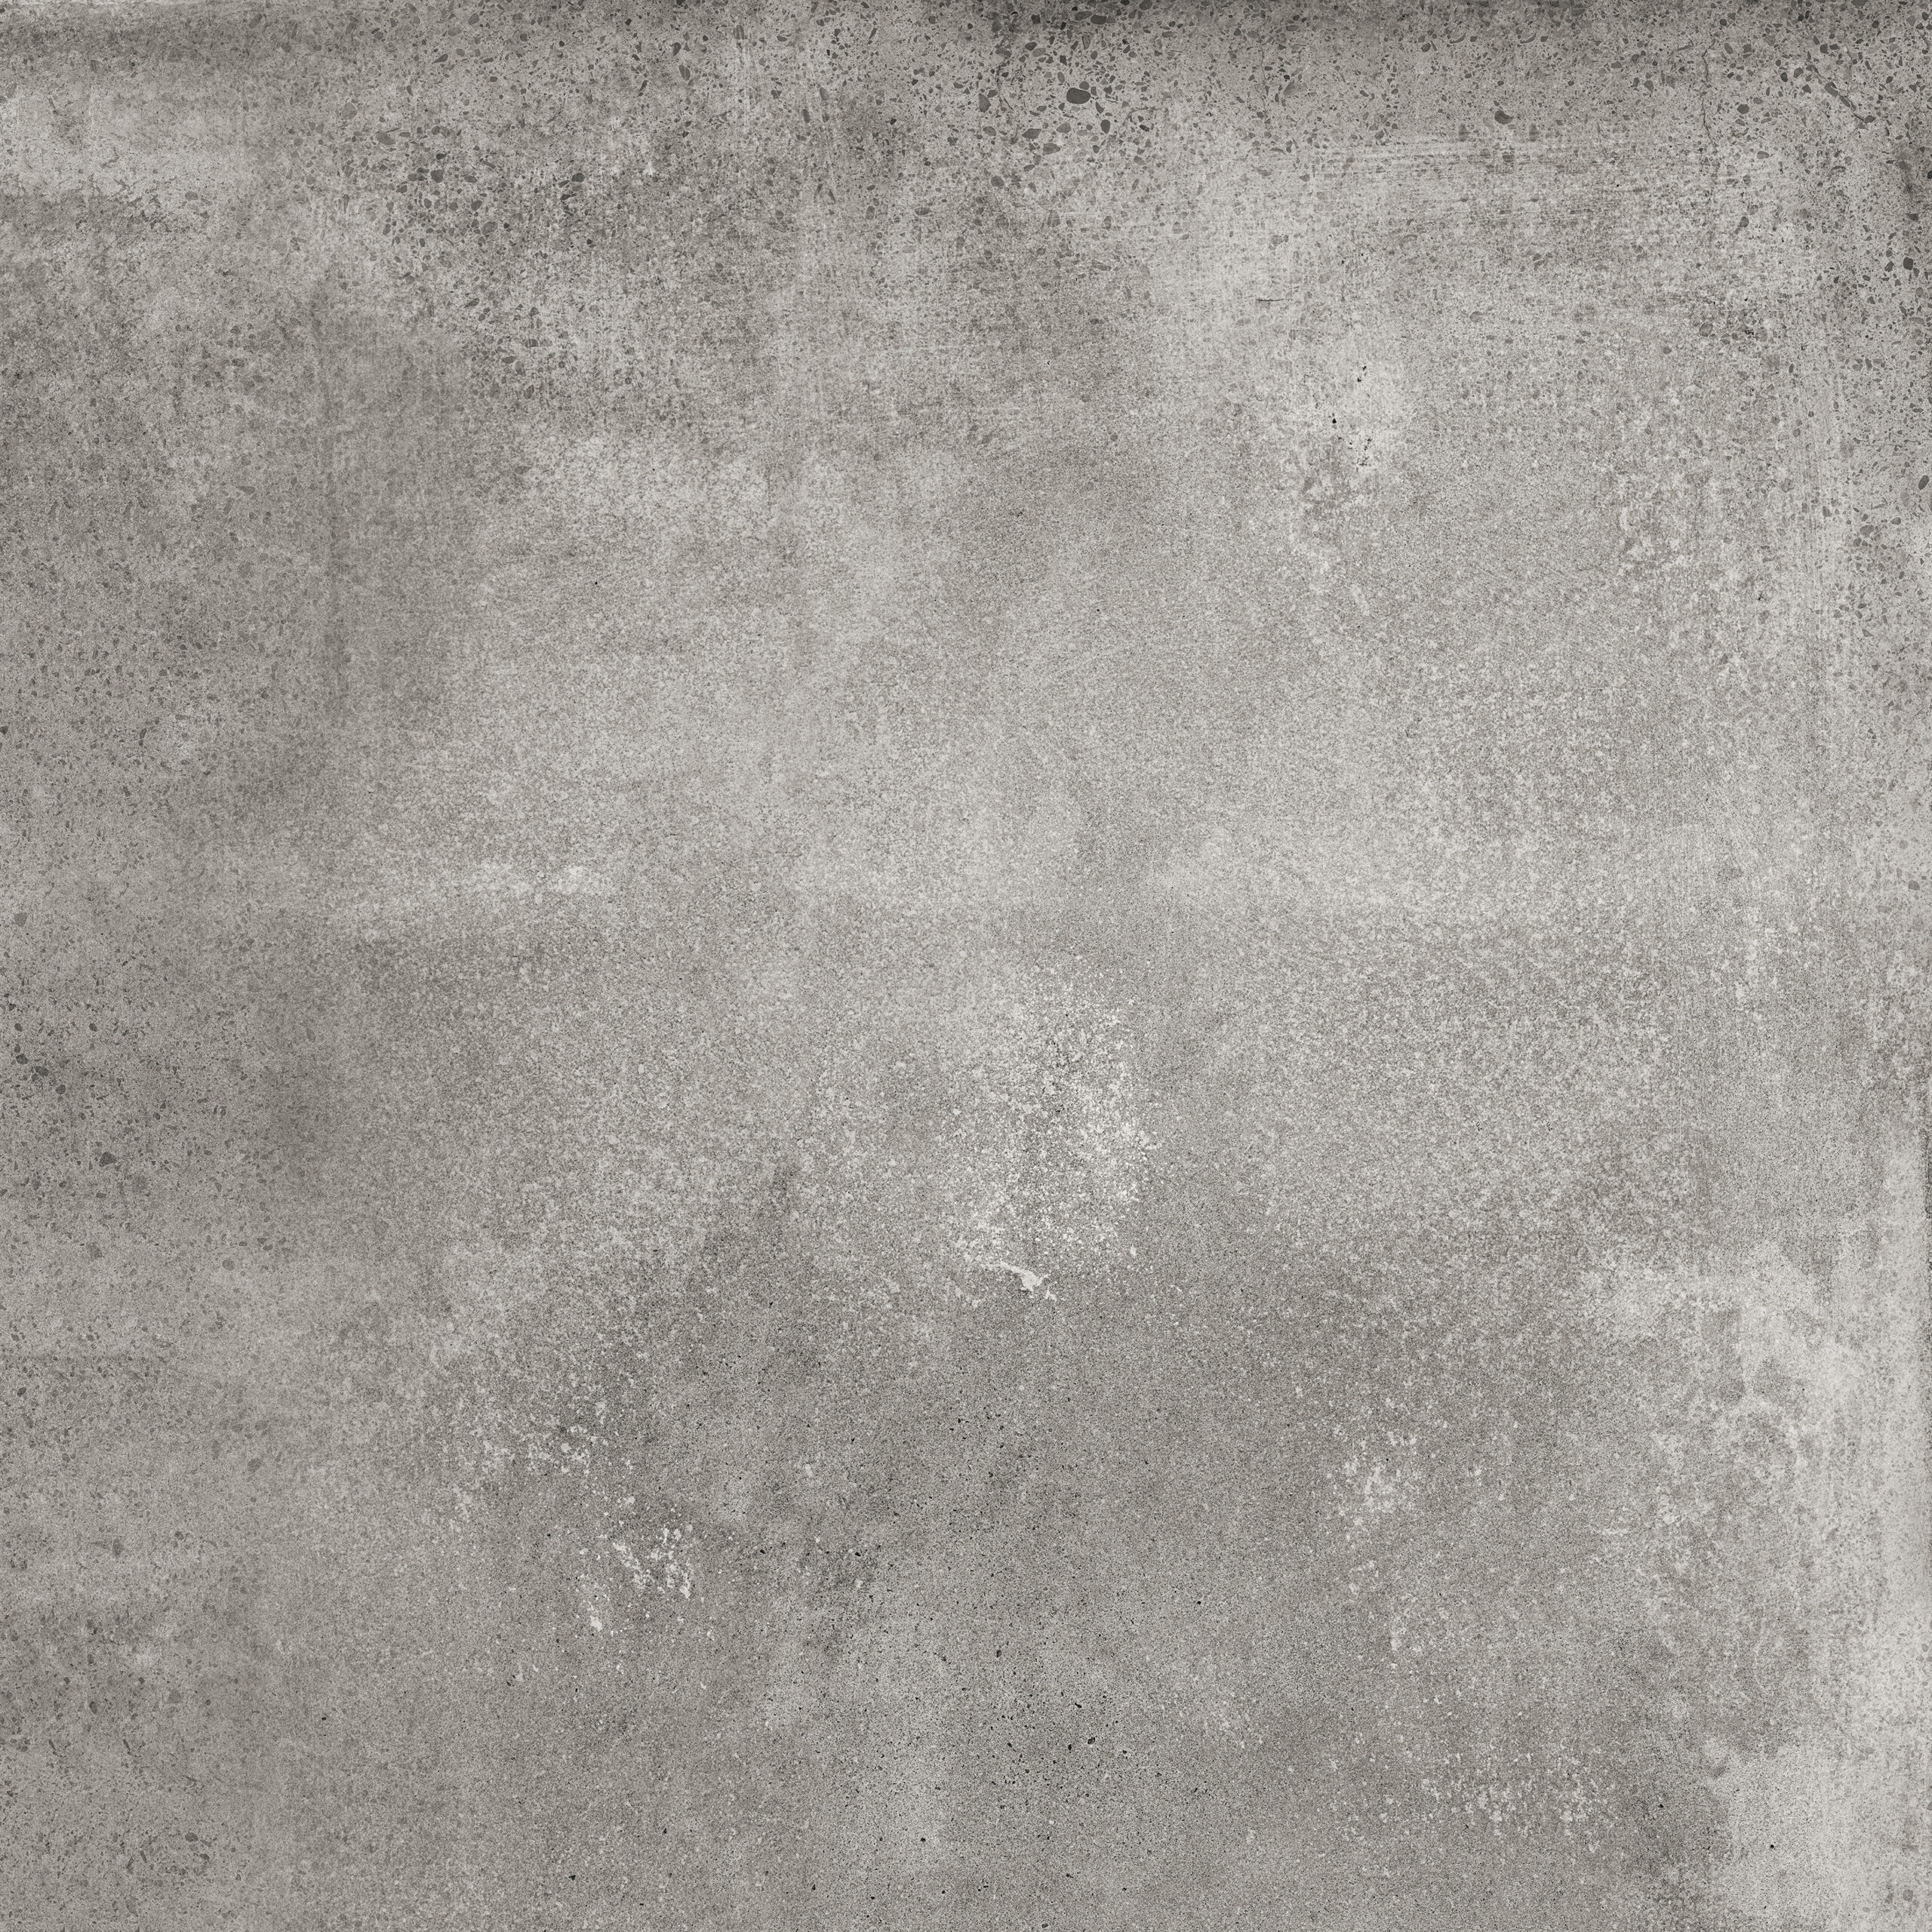 68 317 32x32 Industria Chromium HD Rectified Porcelain Tile scaled